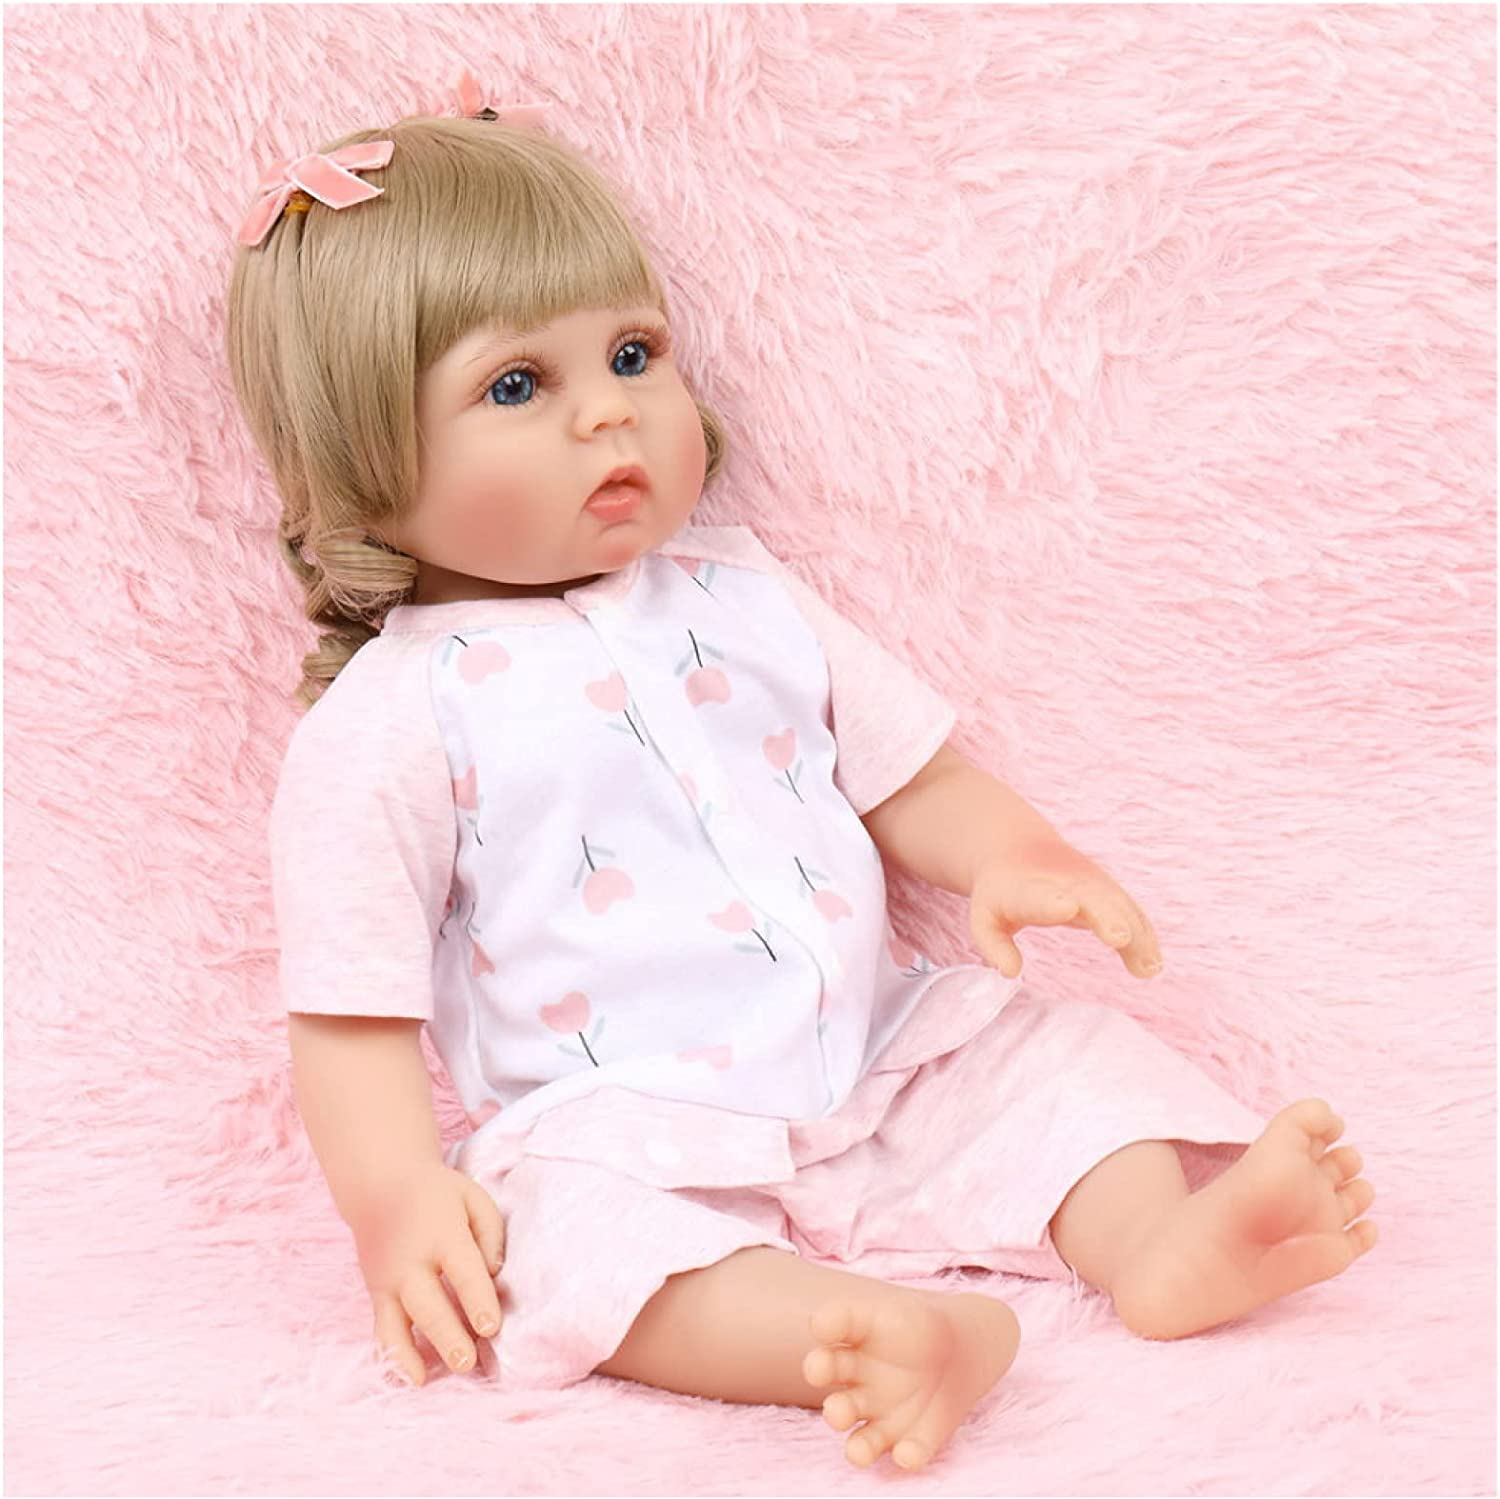 Low price YANRU Silicone Doll - 18in 46cm Newborn Blue OFFicial mail order Baby Eyes Ba